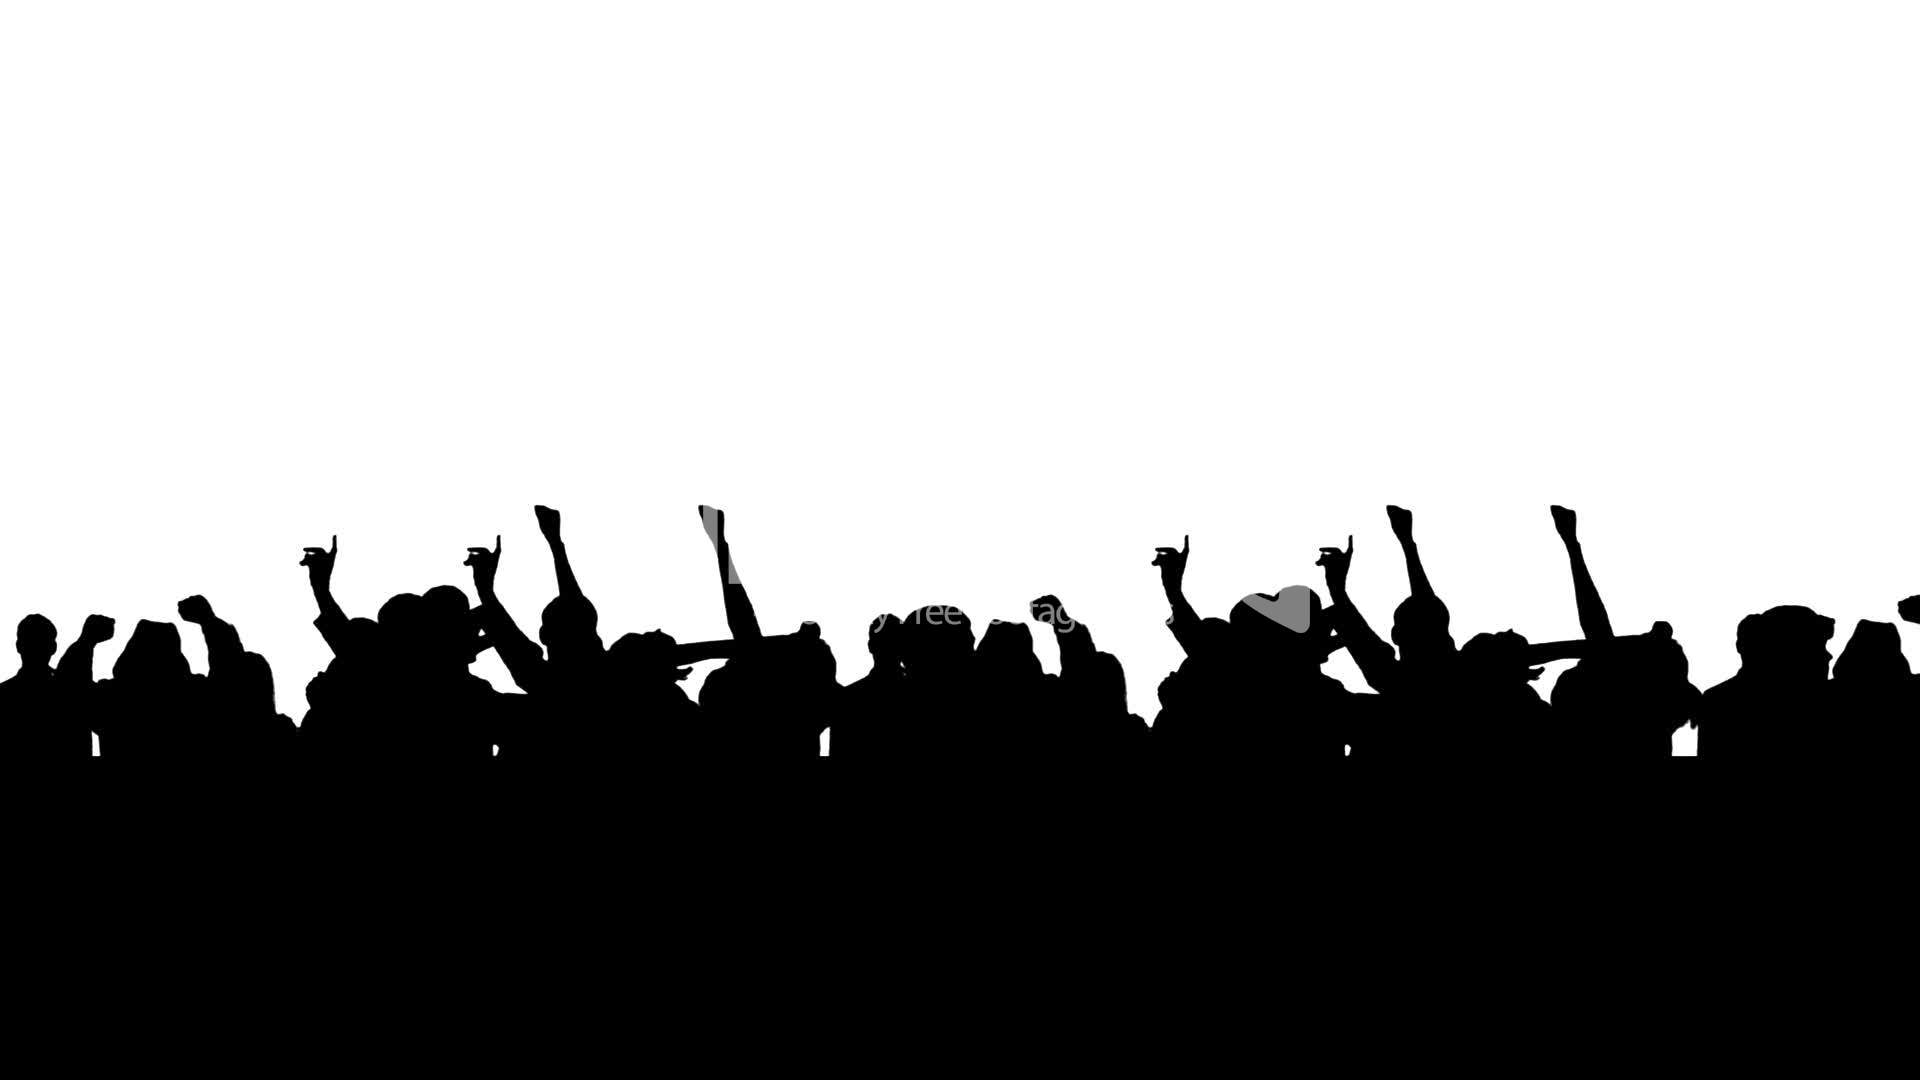 Crowd clipart hands Free Clapping Cheering collection crowd